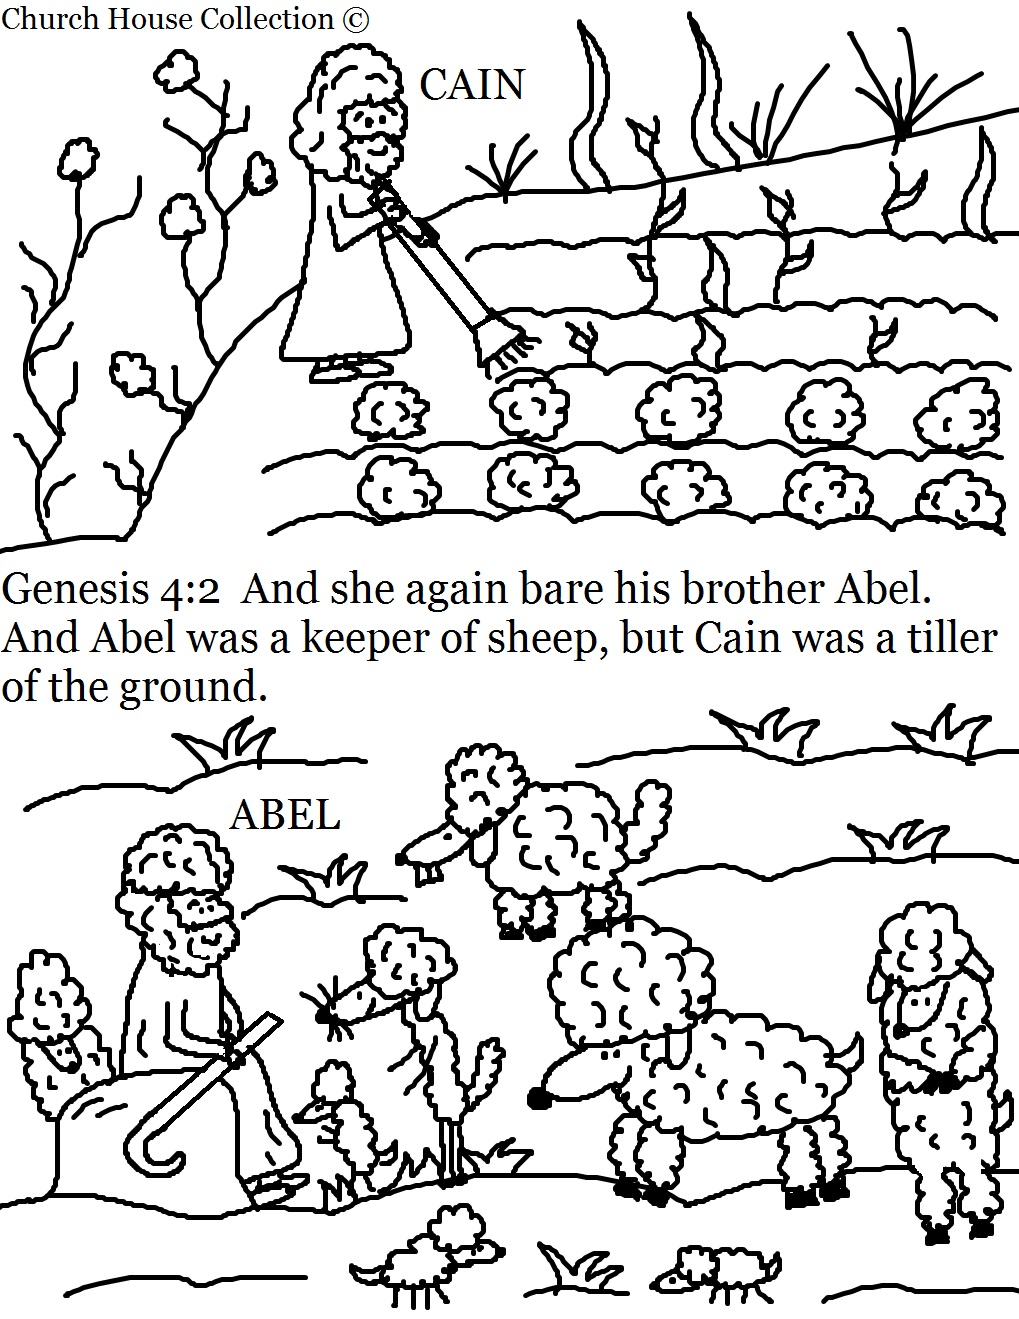 Church House Collection Blog: Cain And Abel Coloring Pages